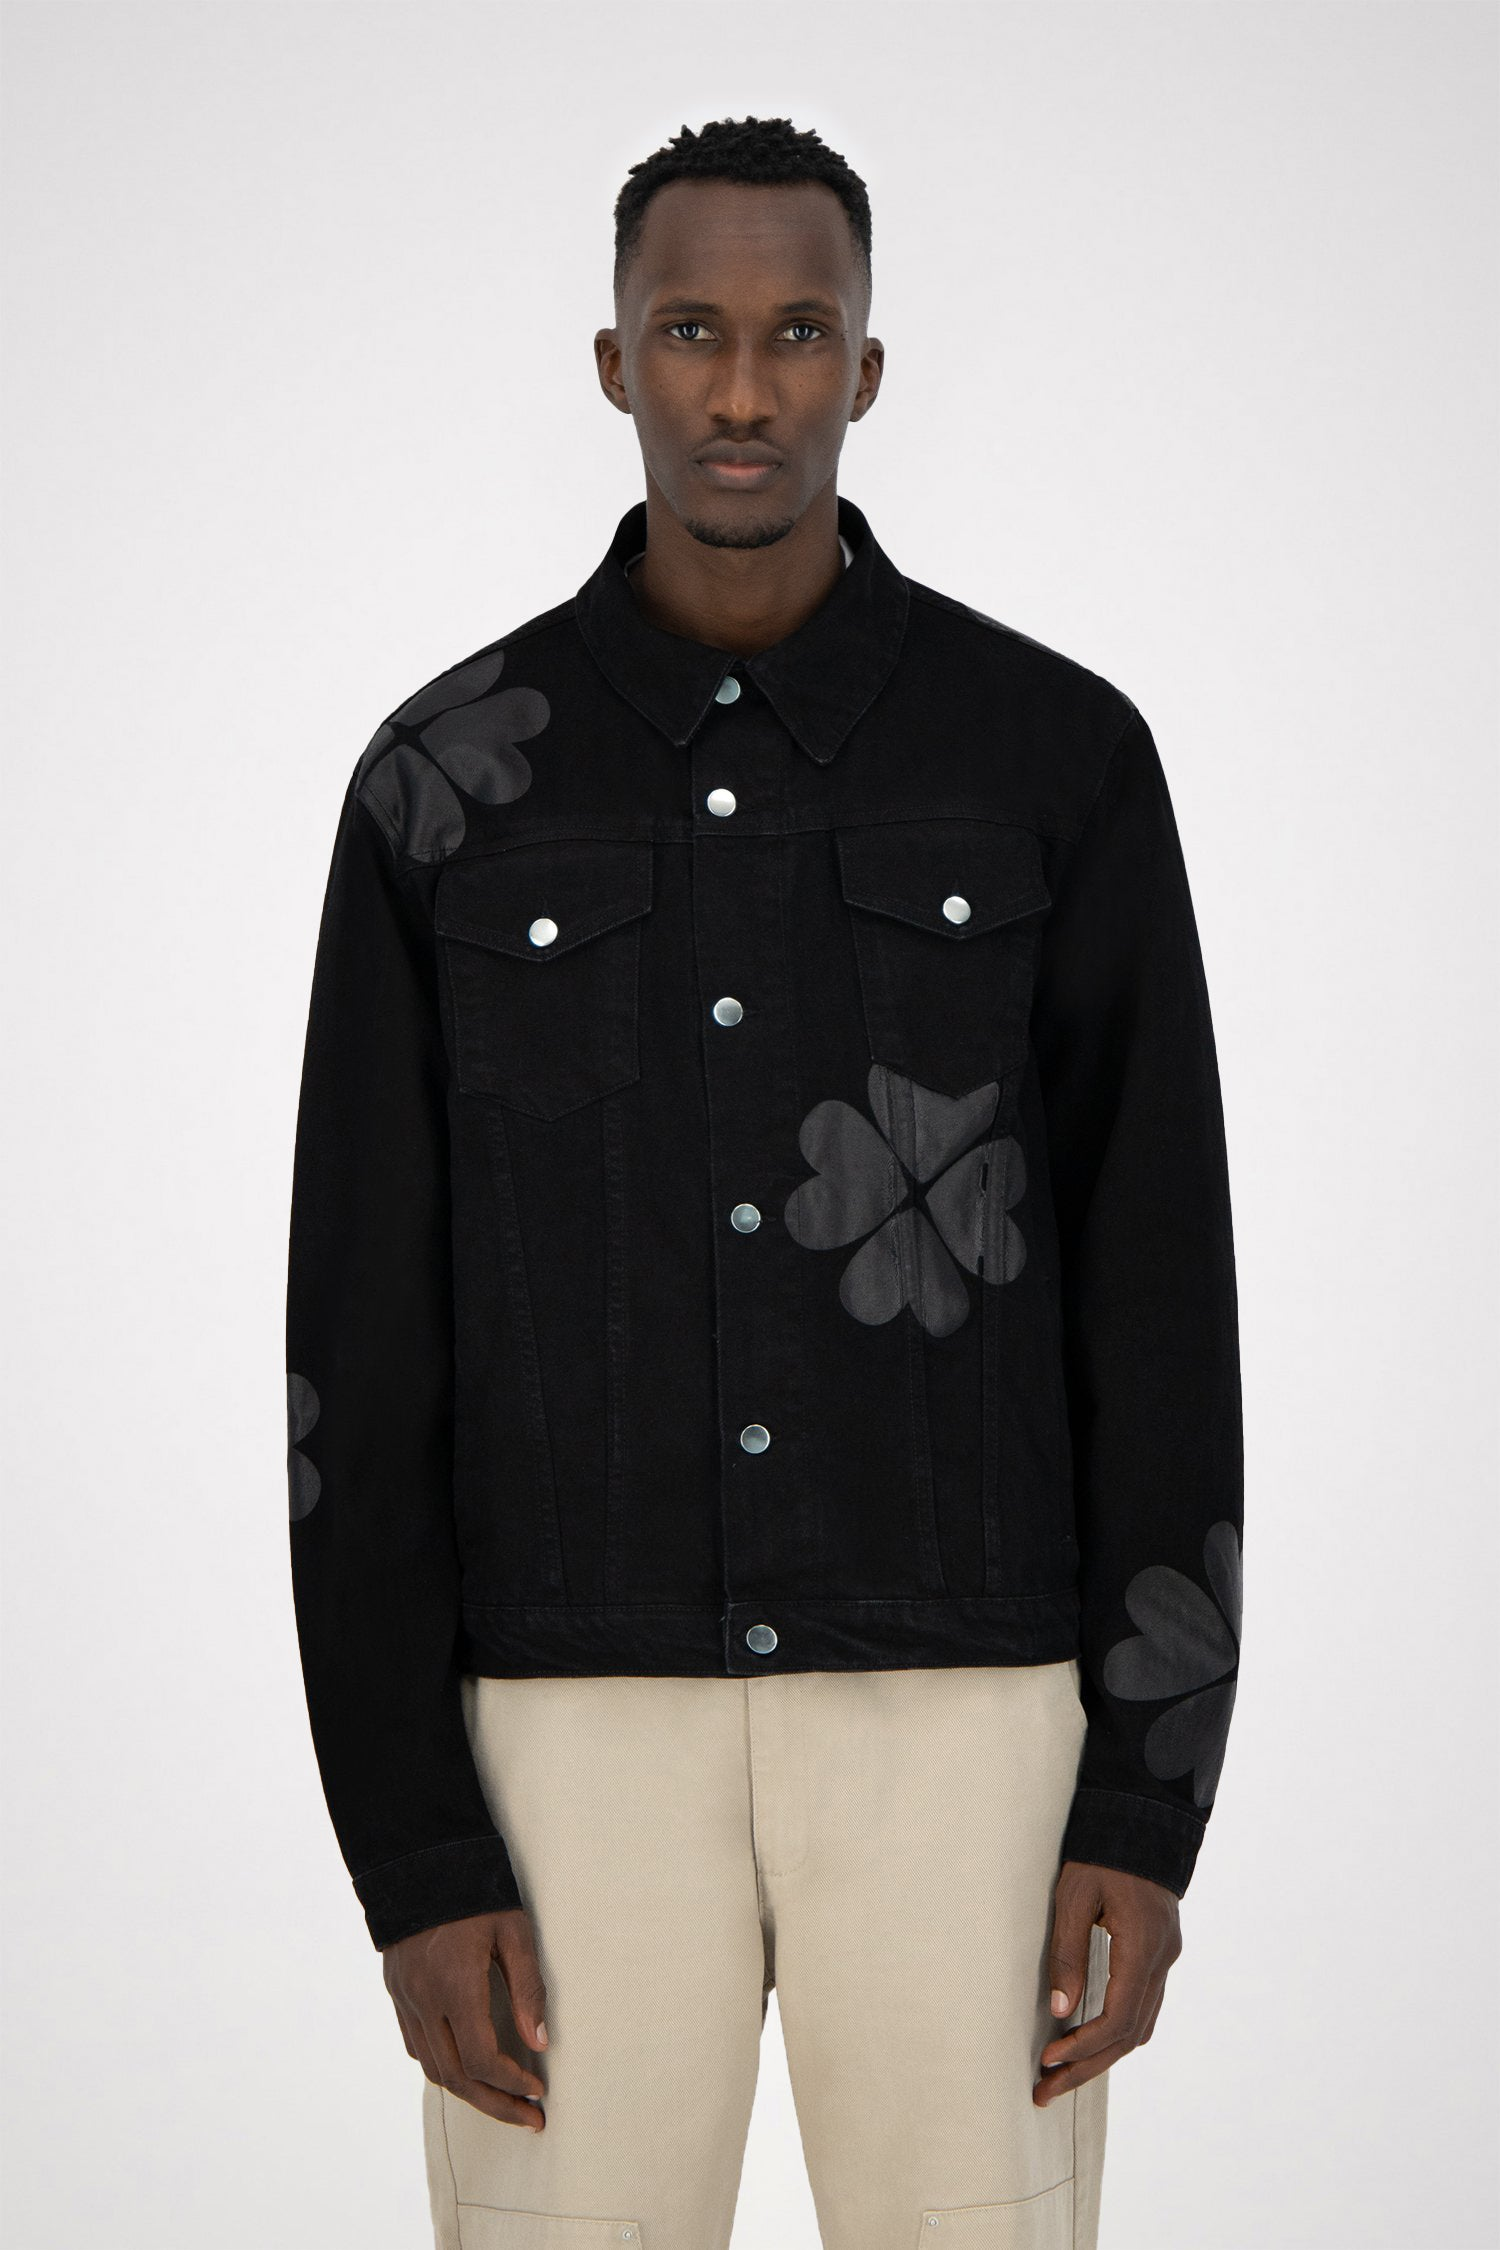 Josh Denim Trevo Jacket - Black